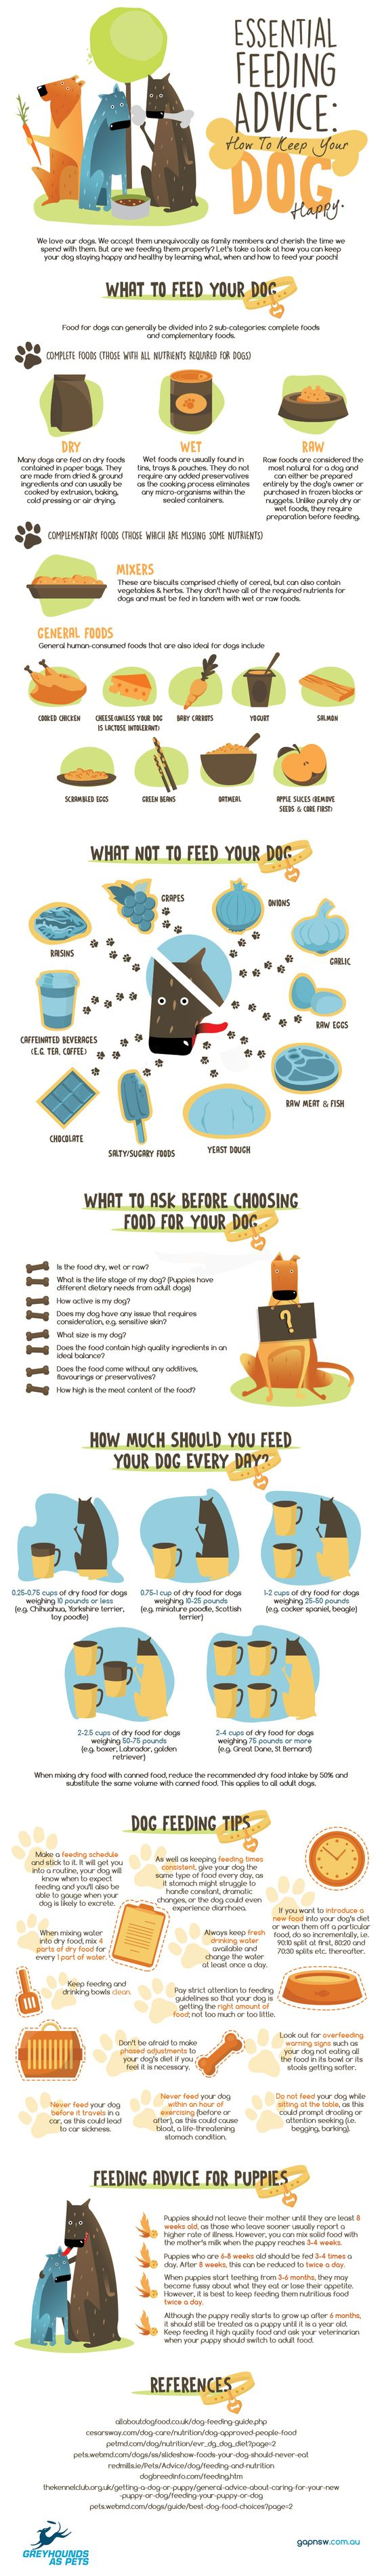 Essential Feeding Advice How To Keep Your Dog Happy-Infographic